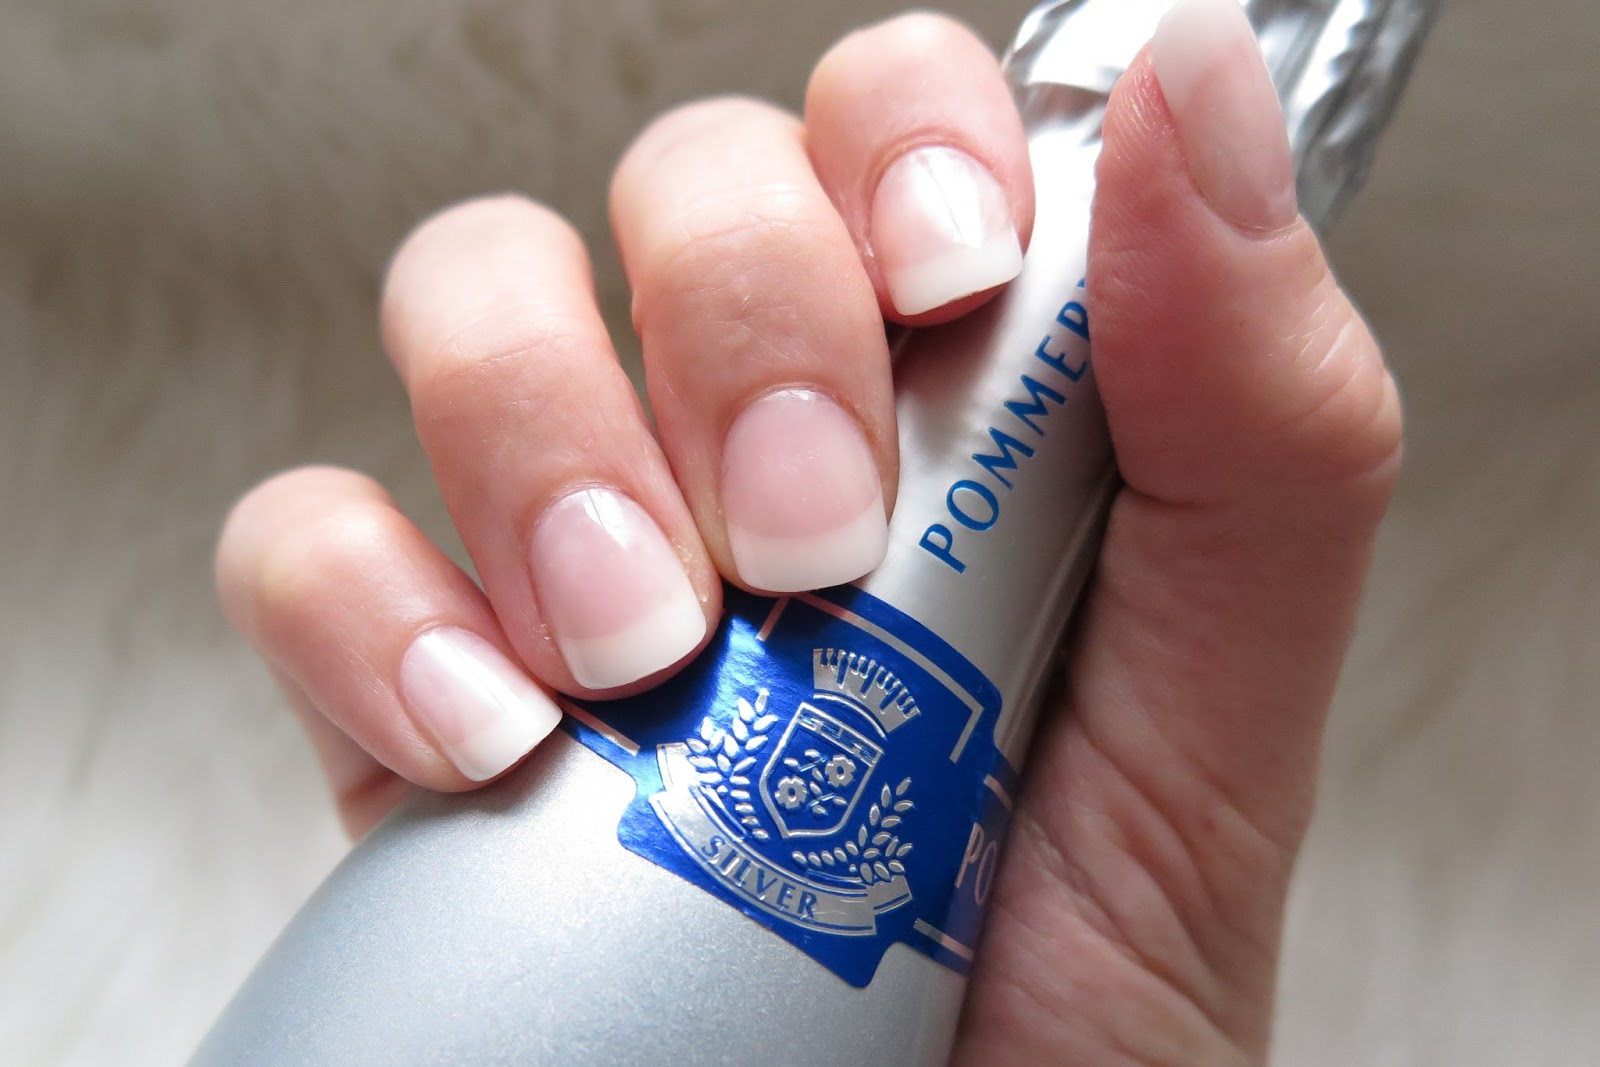 KISS French Nails im Test | Review | hearttobreathe